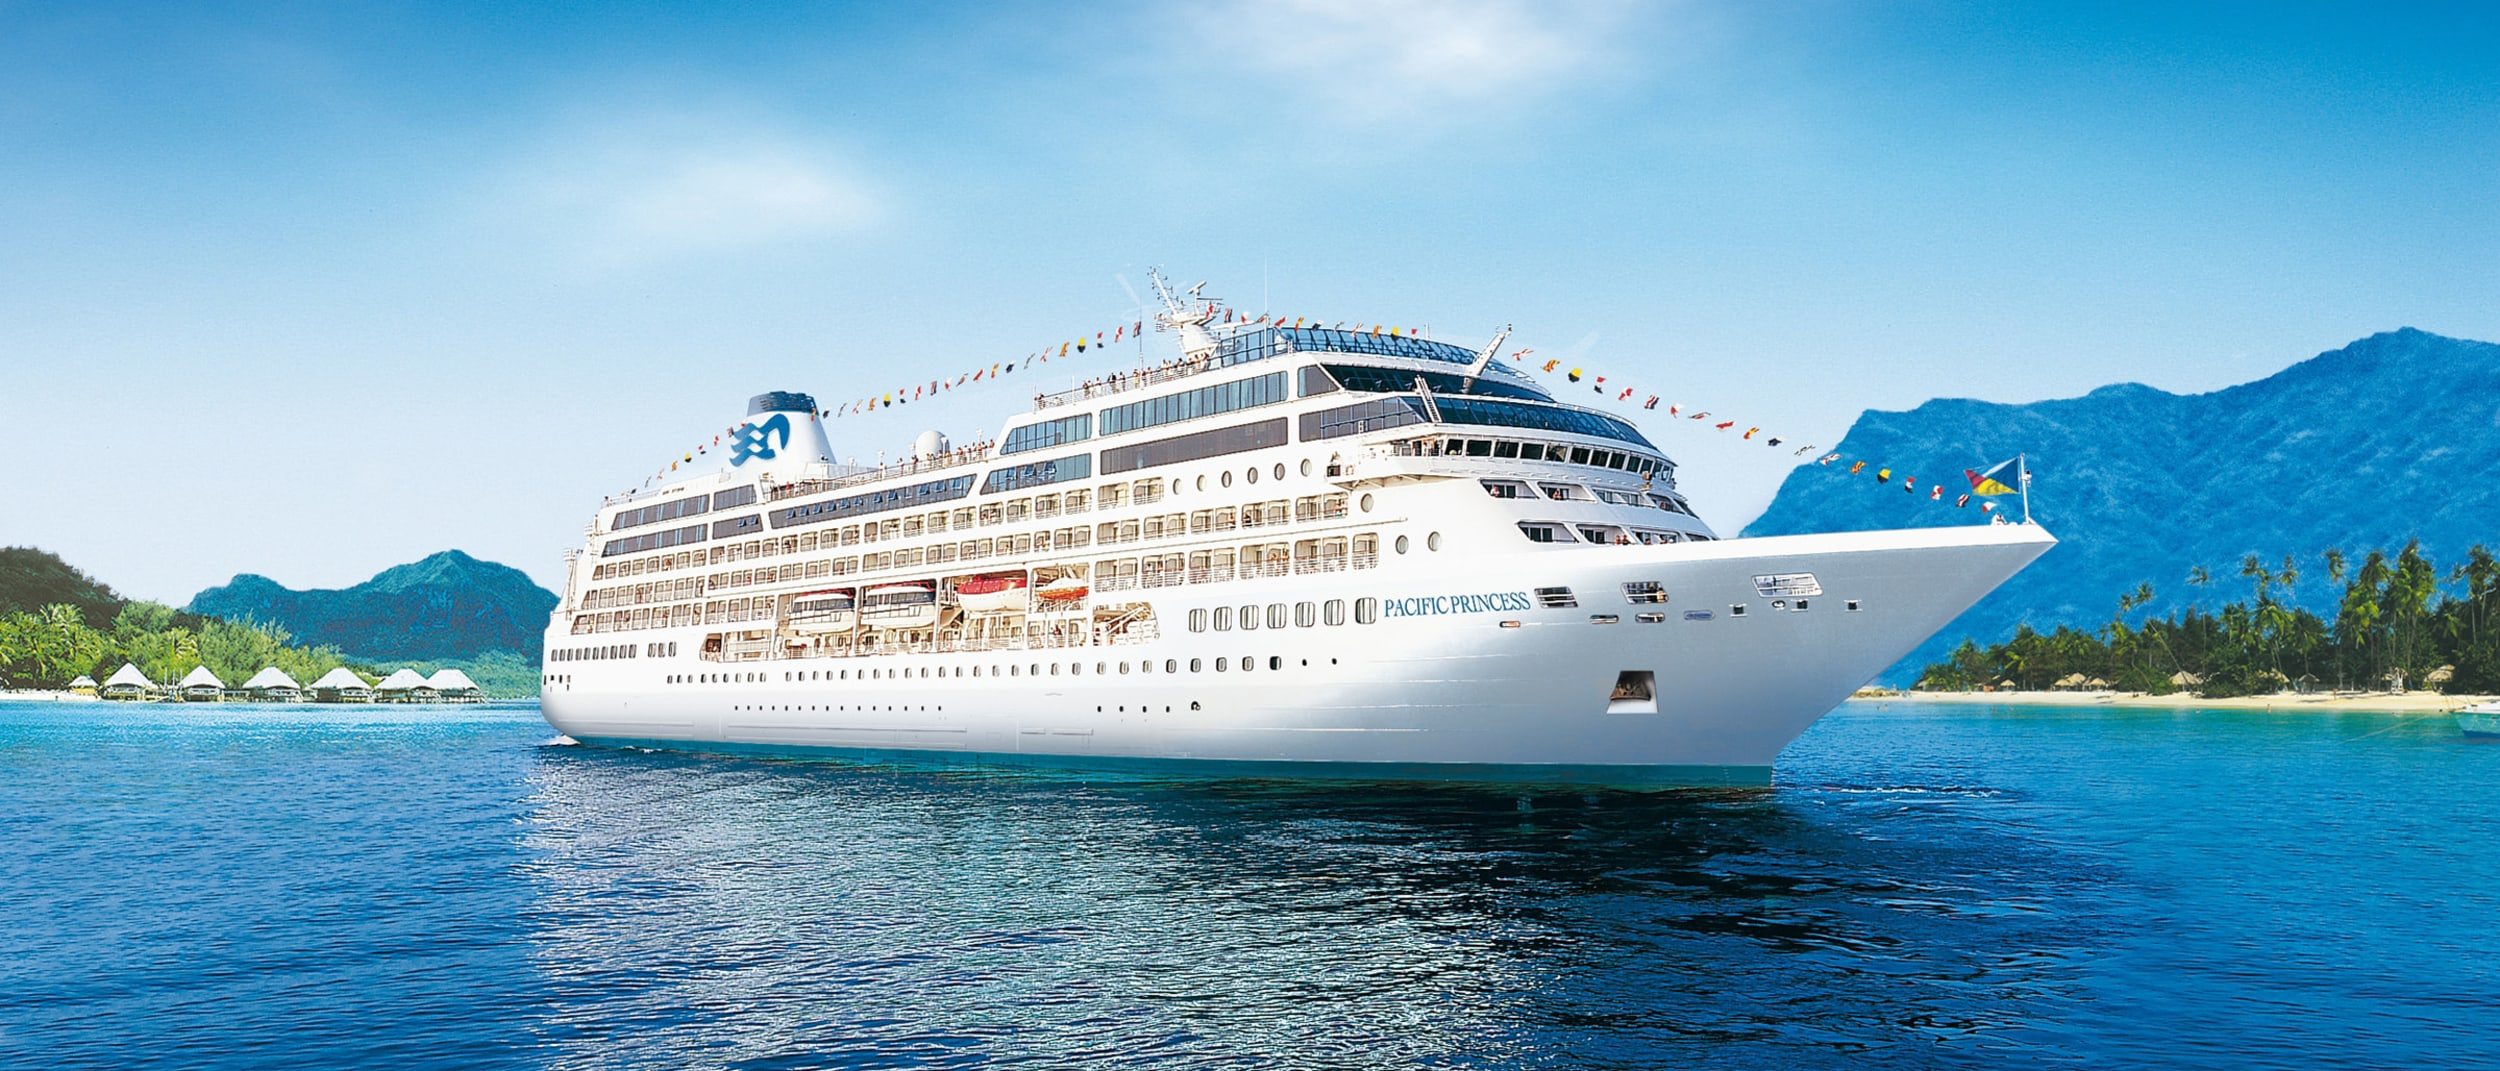 Flight Centre Cruise: win your cruise back